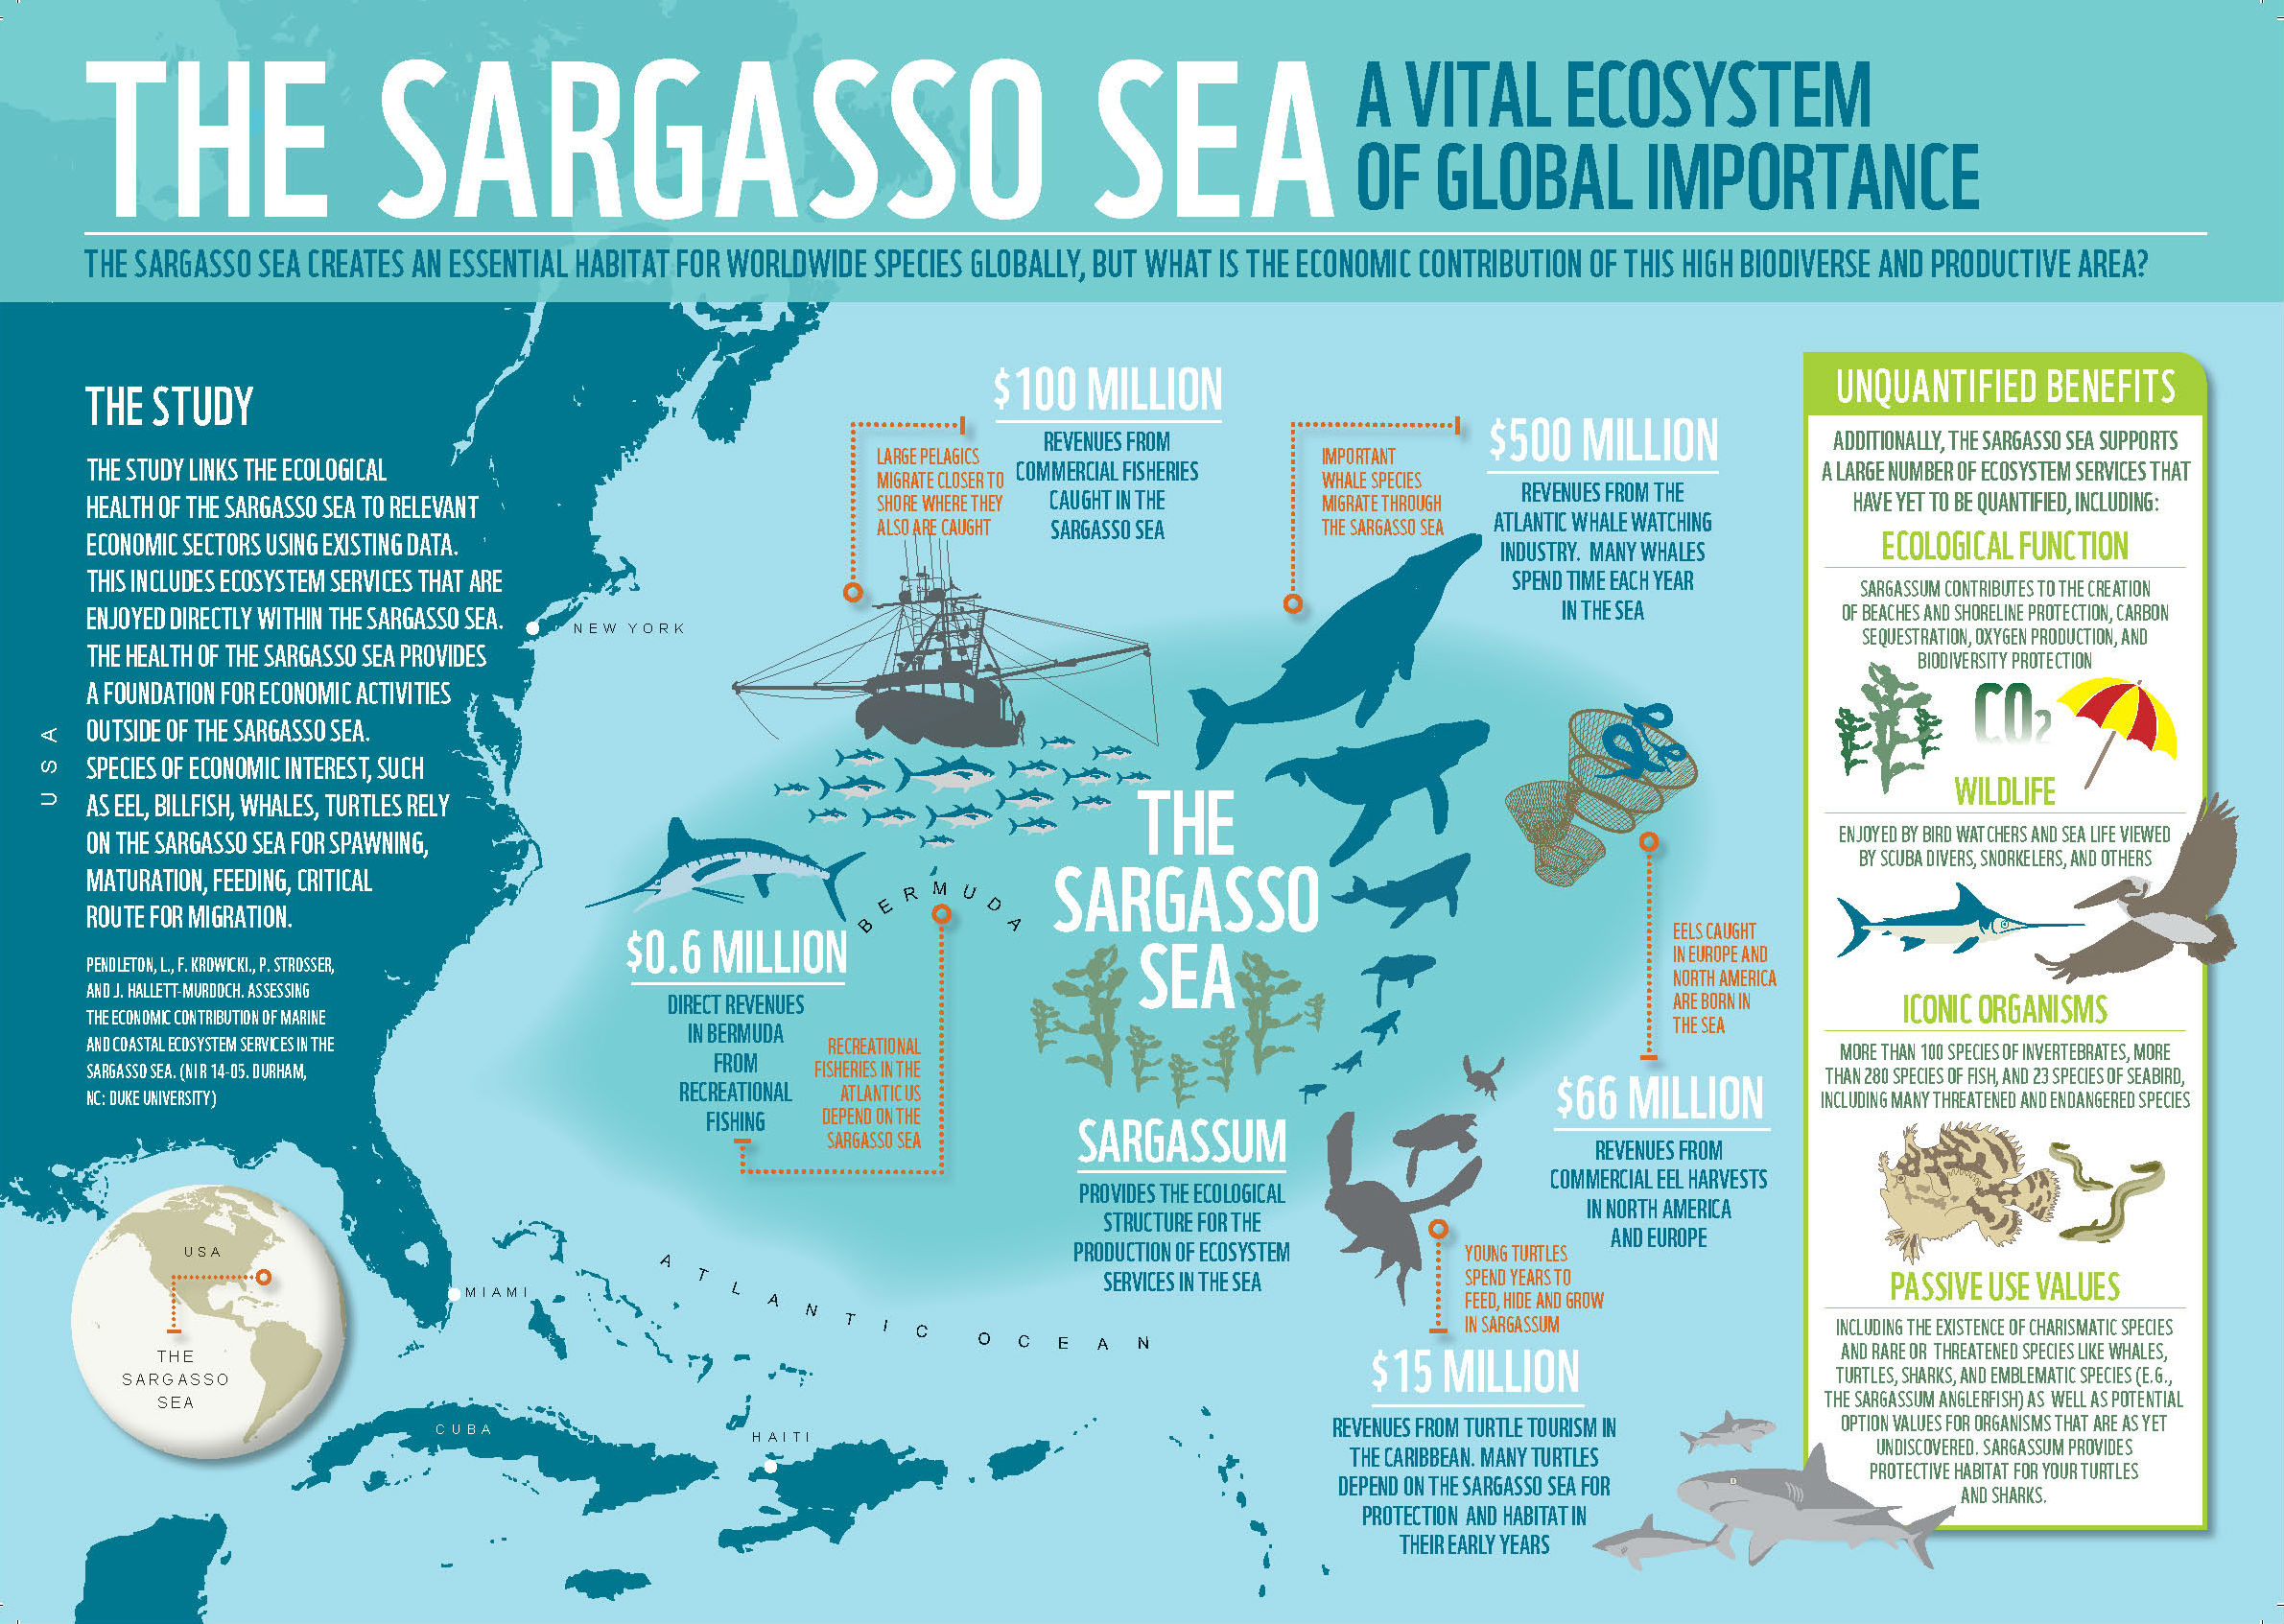 Infographic Ecosystem Services Of The Sargasso Sea